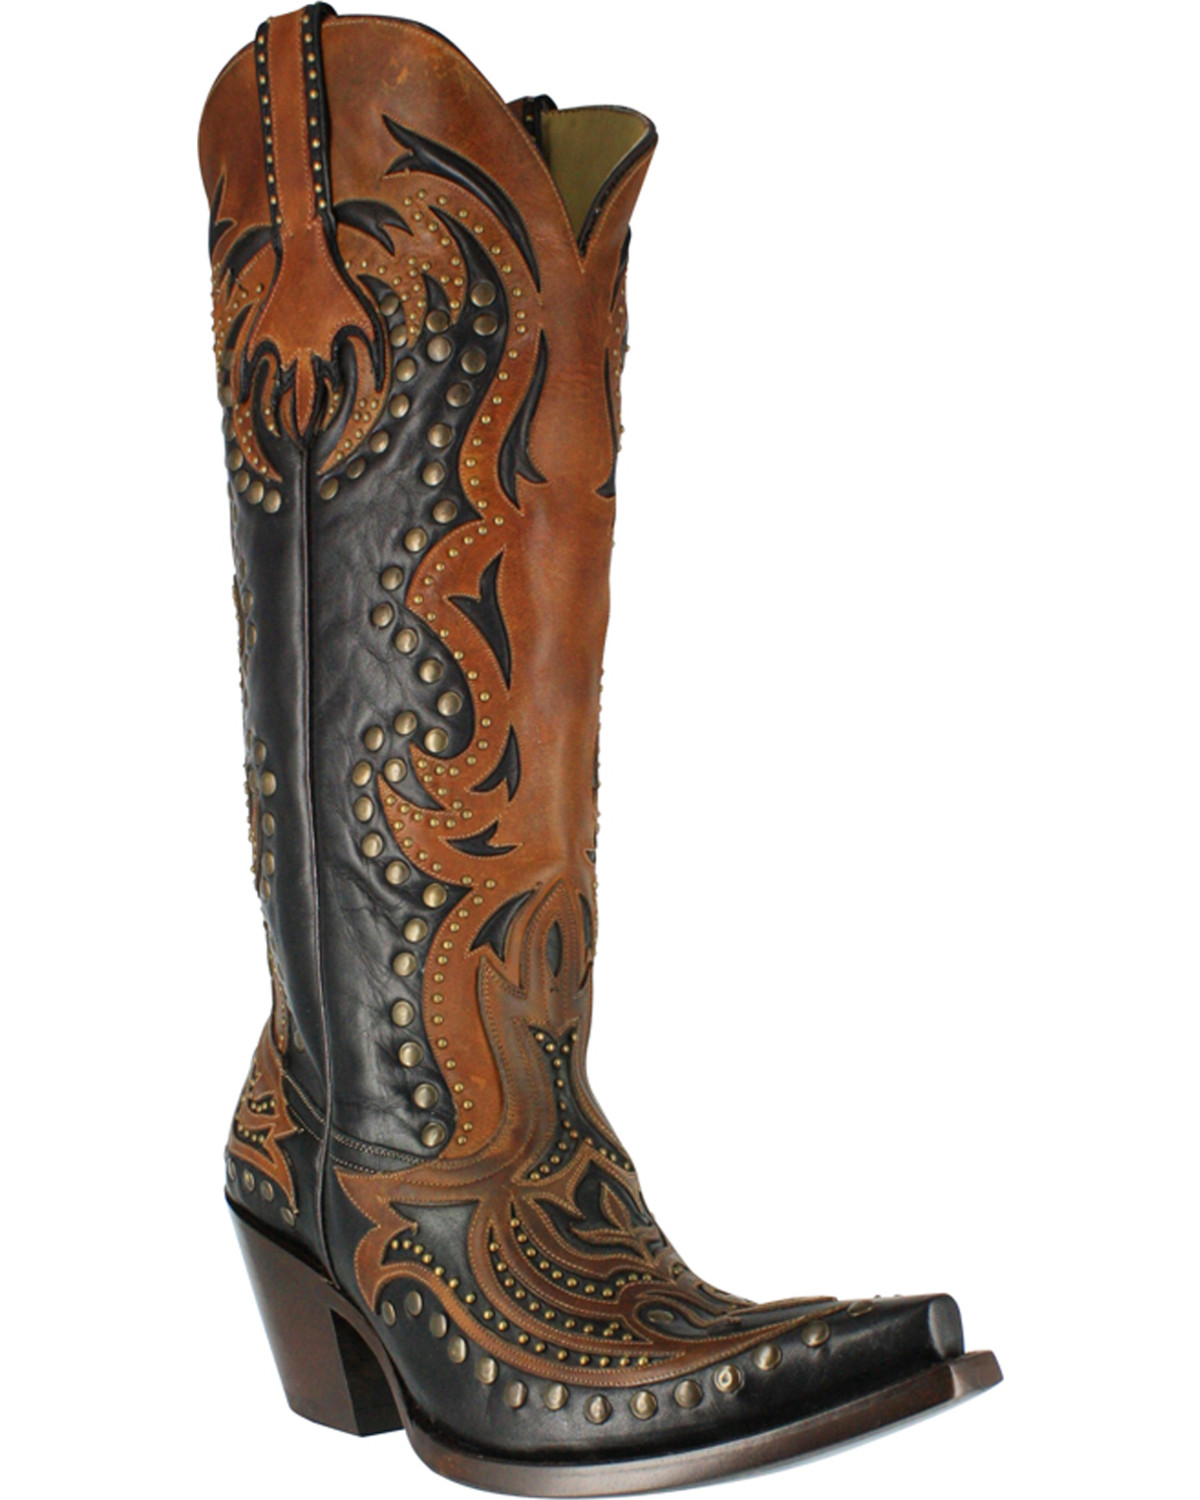 8351c489903 Corral Women s Tall Top Inlay and Stud Western Boots